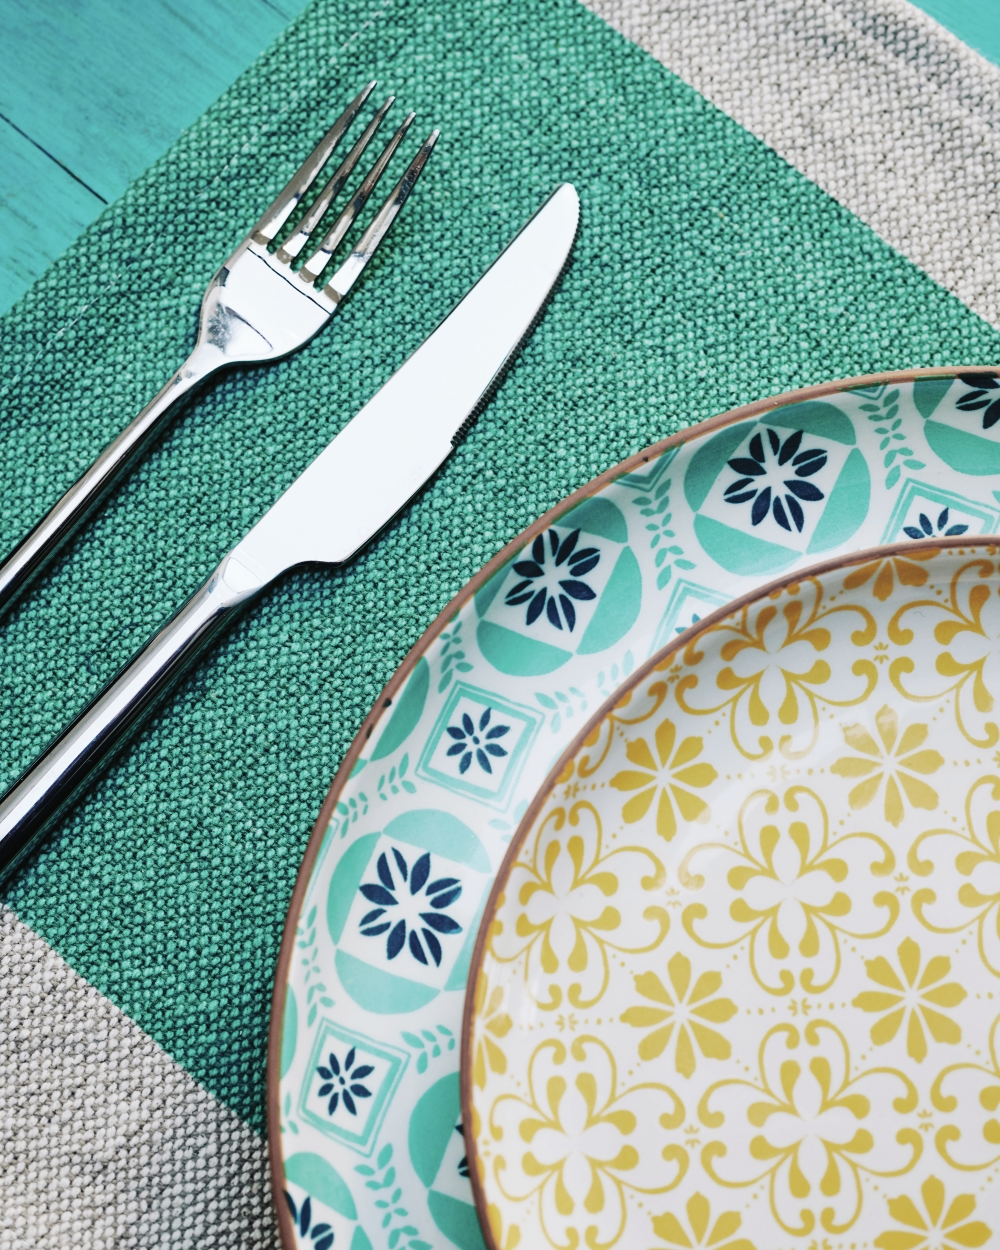 Crockery & Table Accessories | Sainsbury's